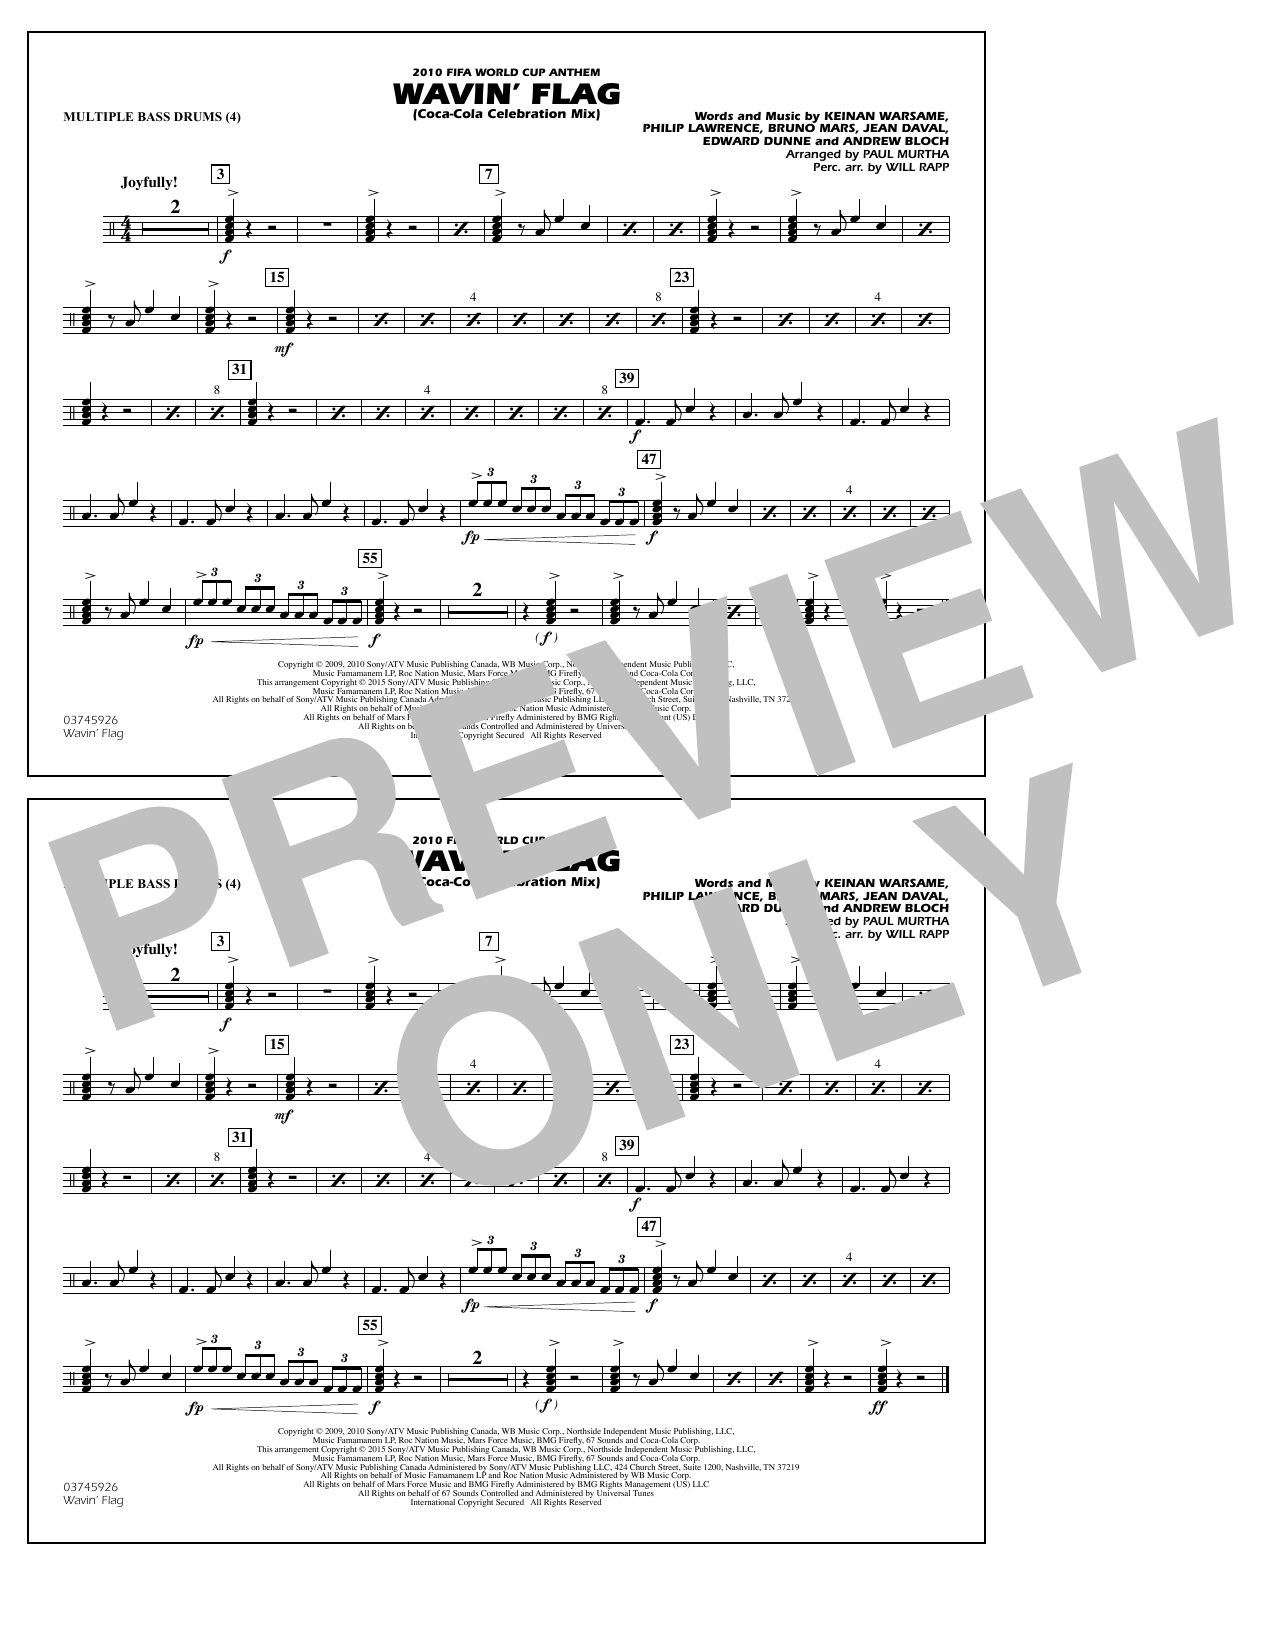 Wavin' Flag - Multiple Bass Drums (Marching Band)